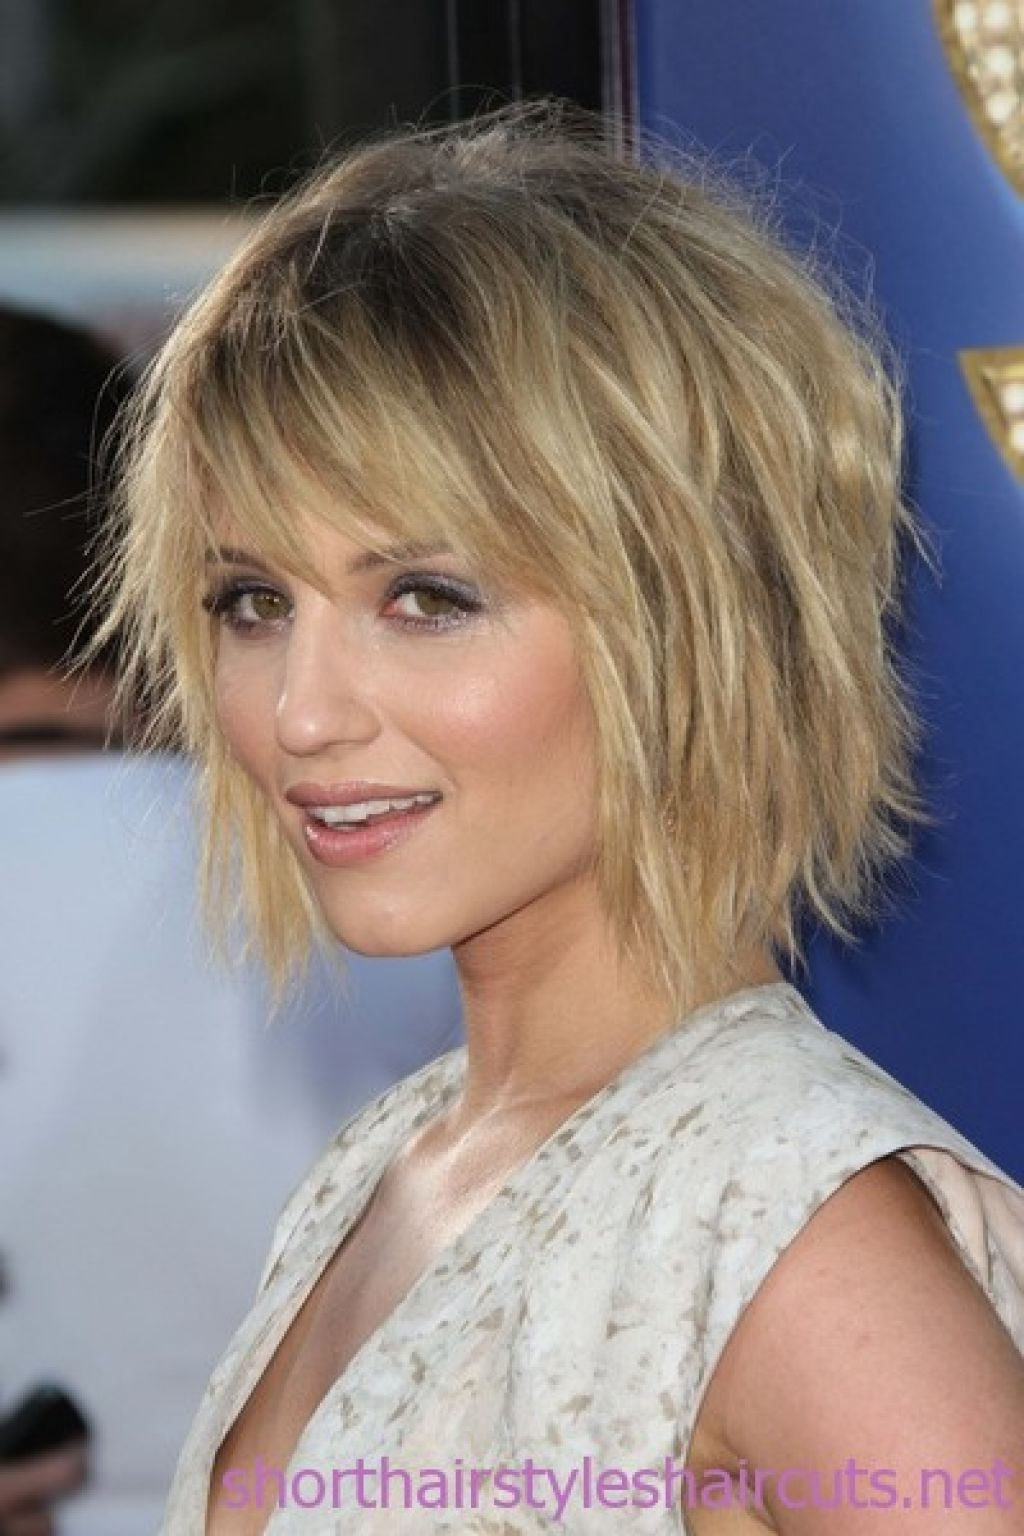 Short Choppy Layered Hairstyles For Fine Hair – 2015 Hairstyles Inside Widely Used Layered Shaggy Bob Hairstyles (View 14 of 15)